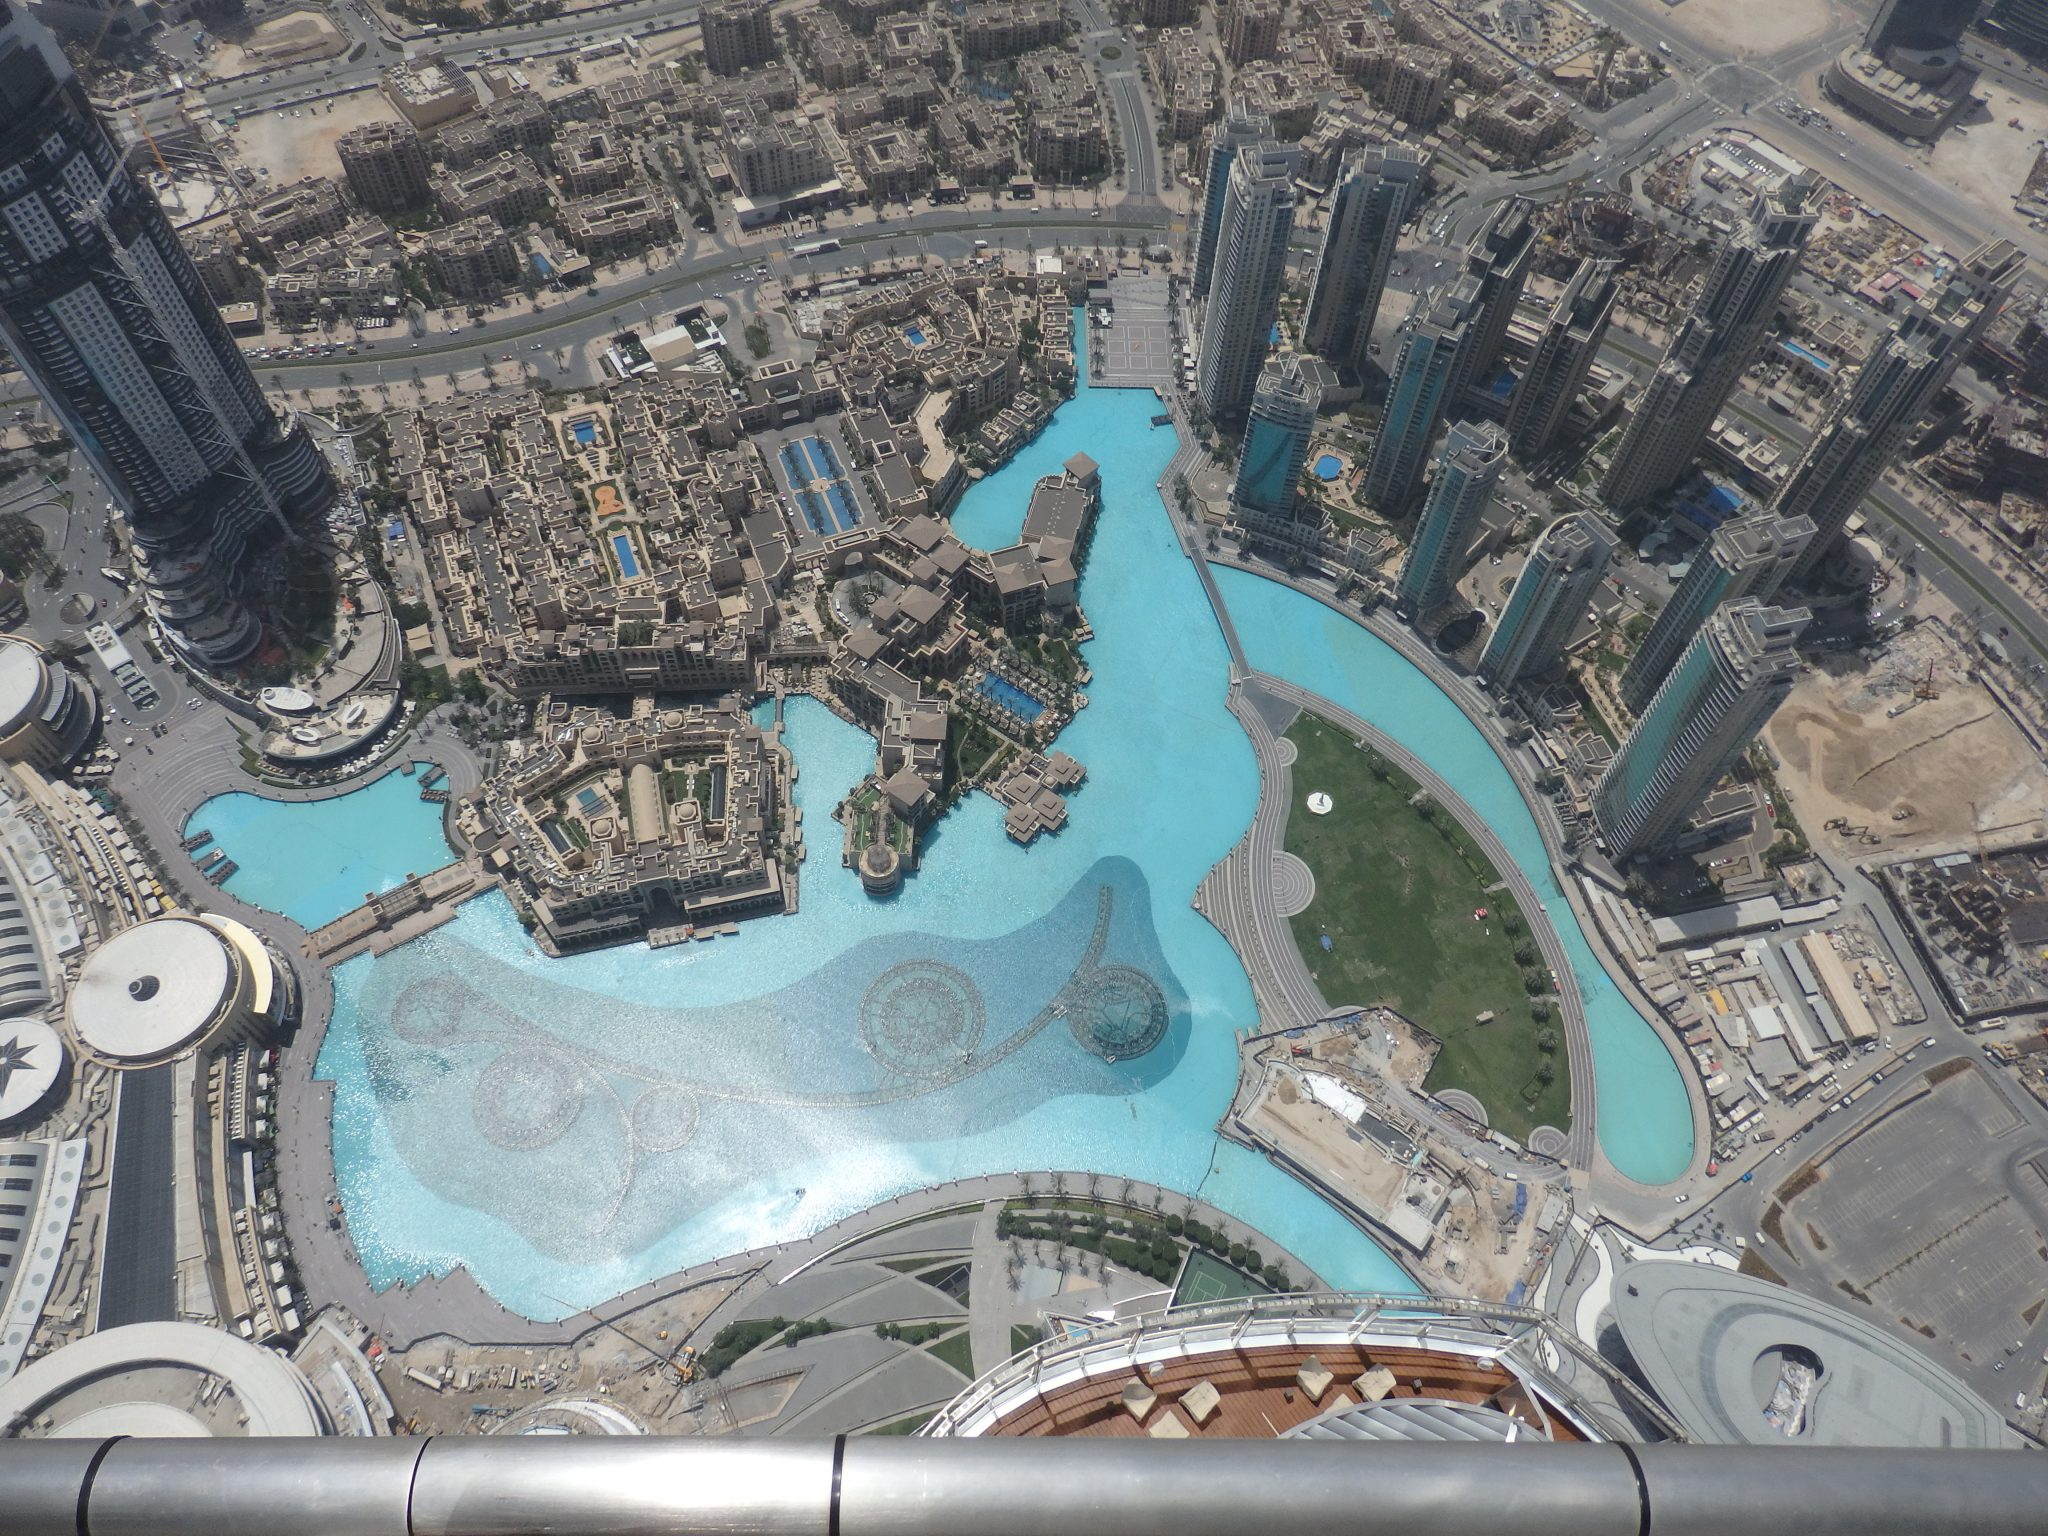 a view down from the Burj Khalifa in Dubai, the tallest building in the world (but not for long)